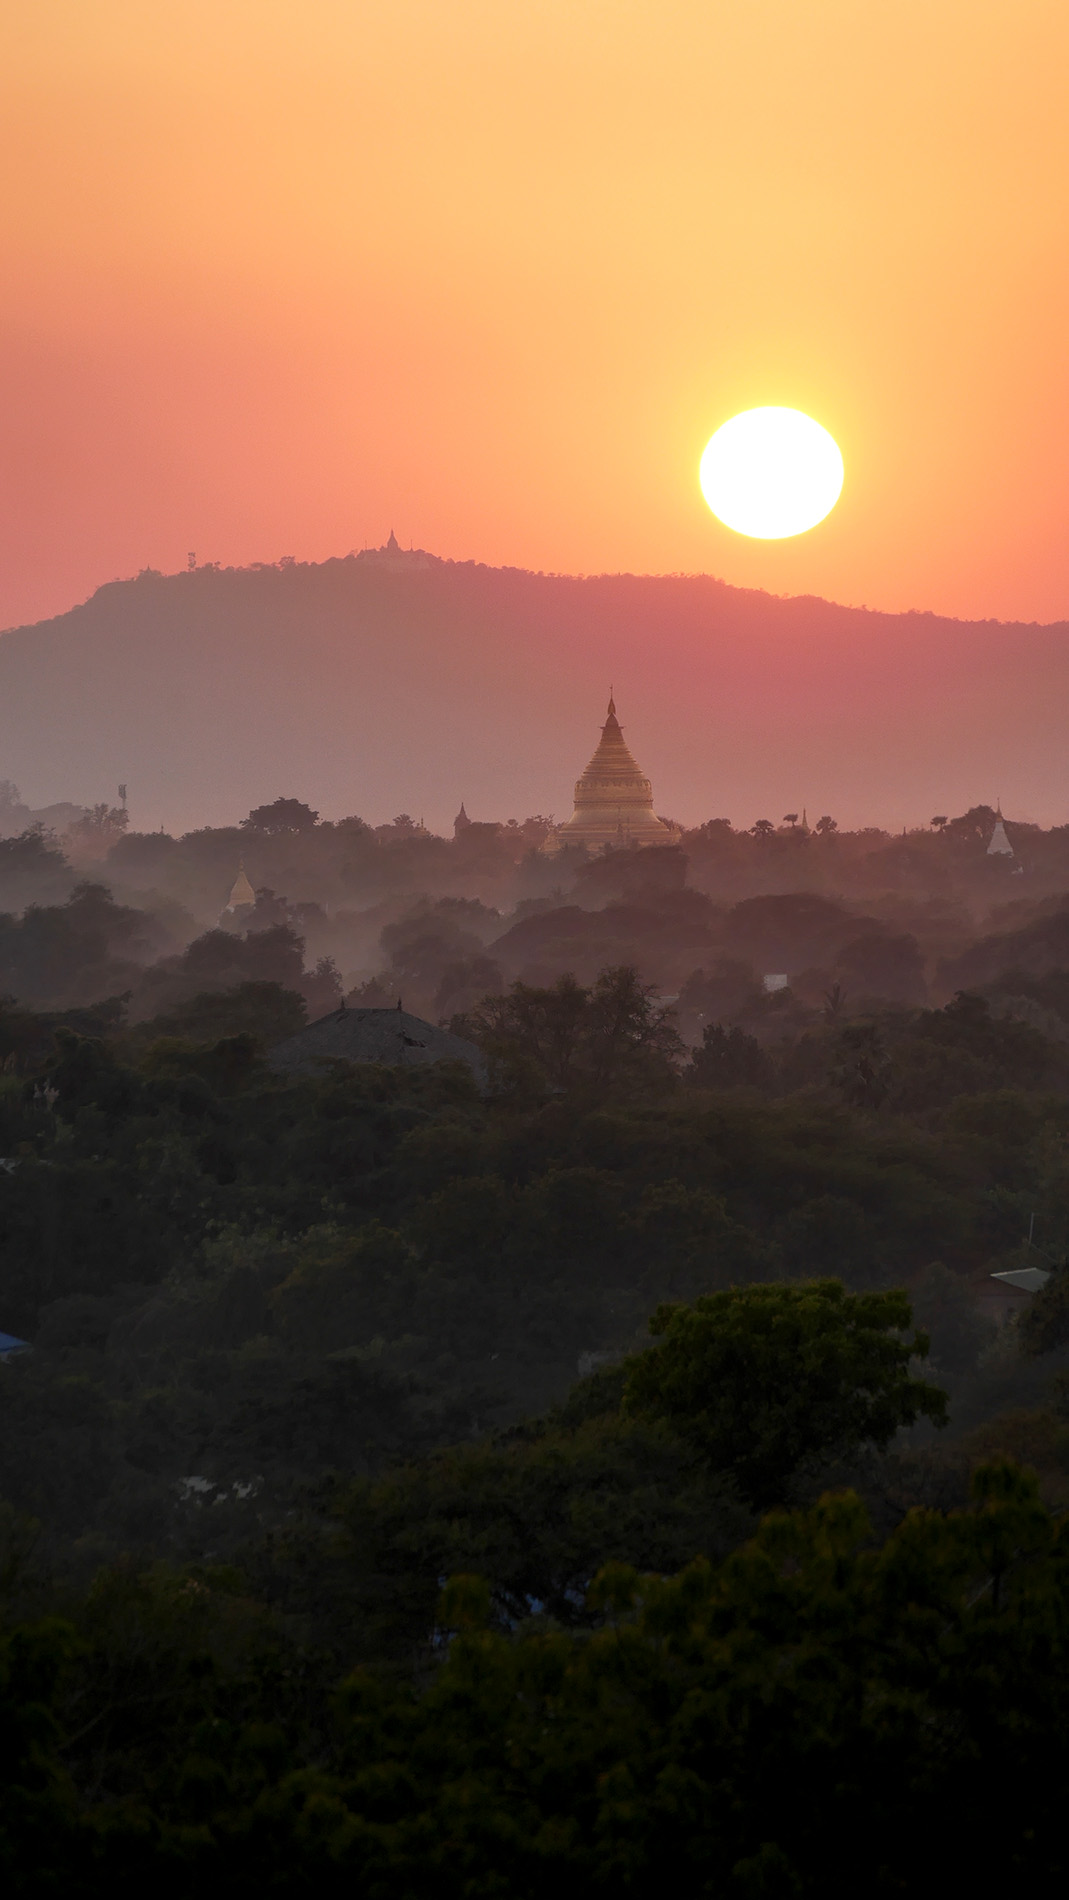 ...and the famous Bagan sunset, as well